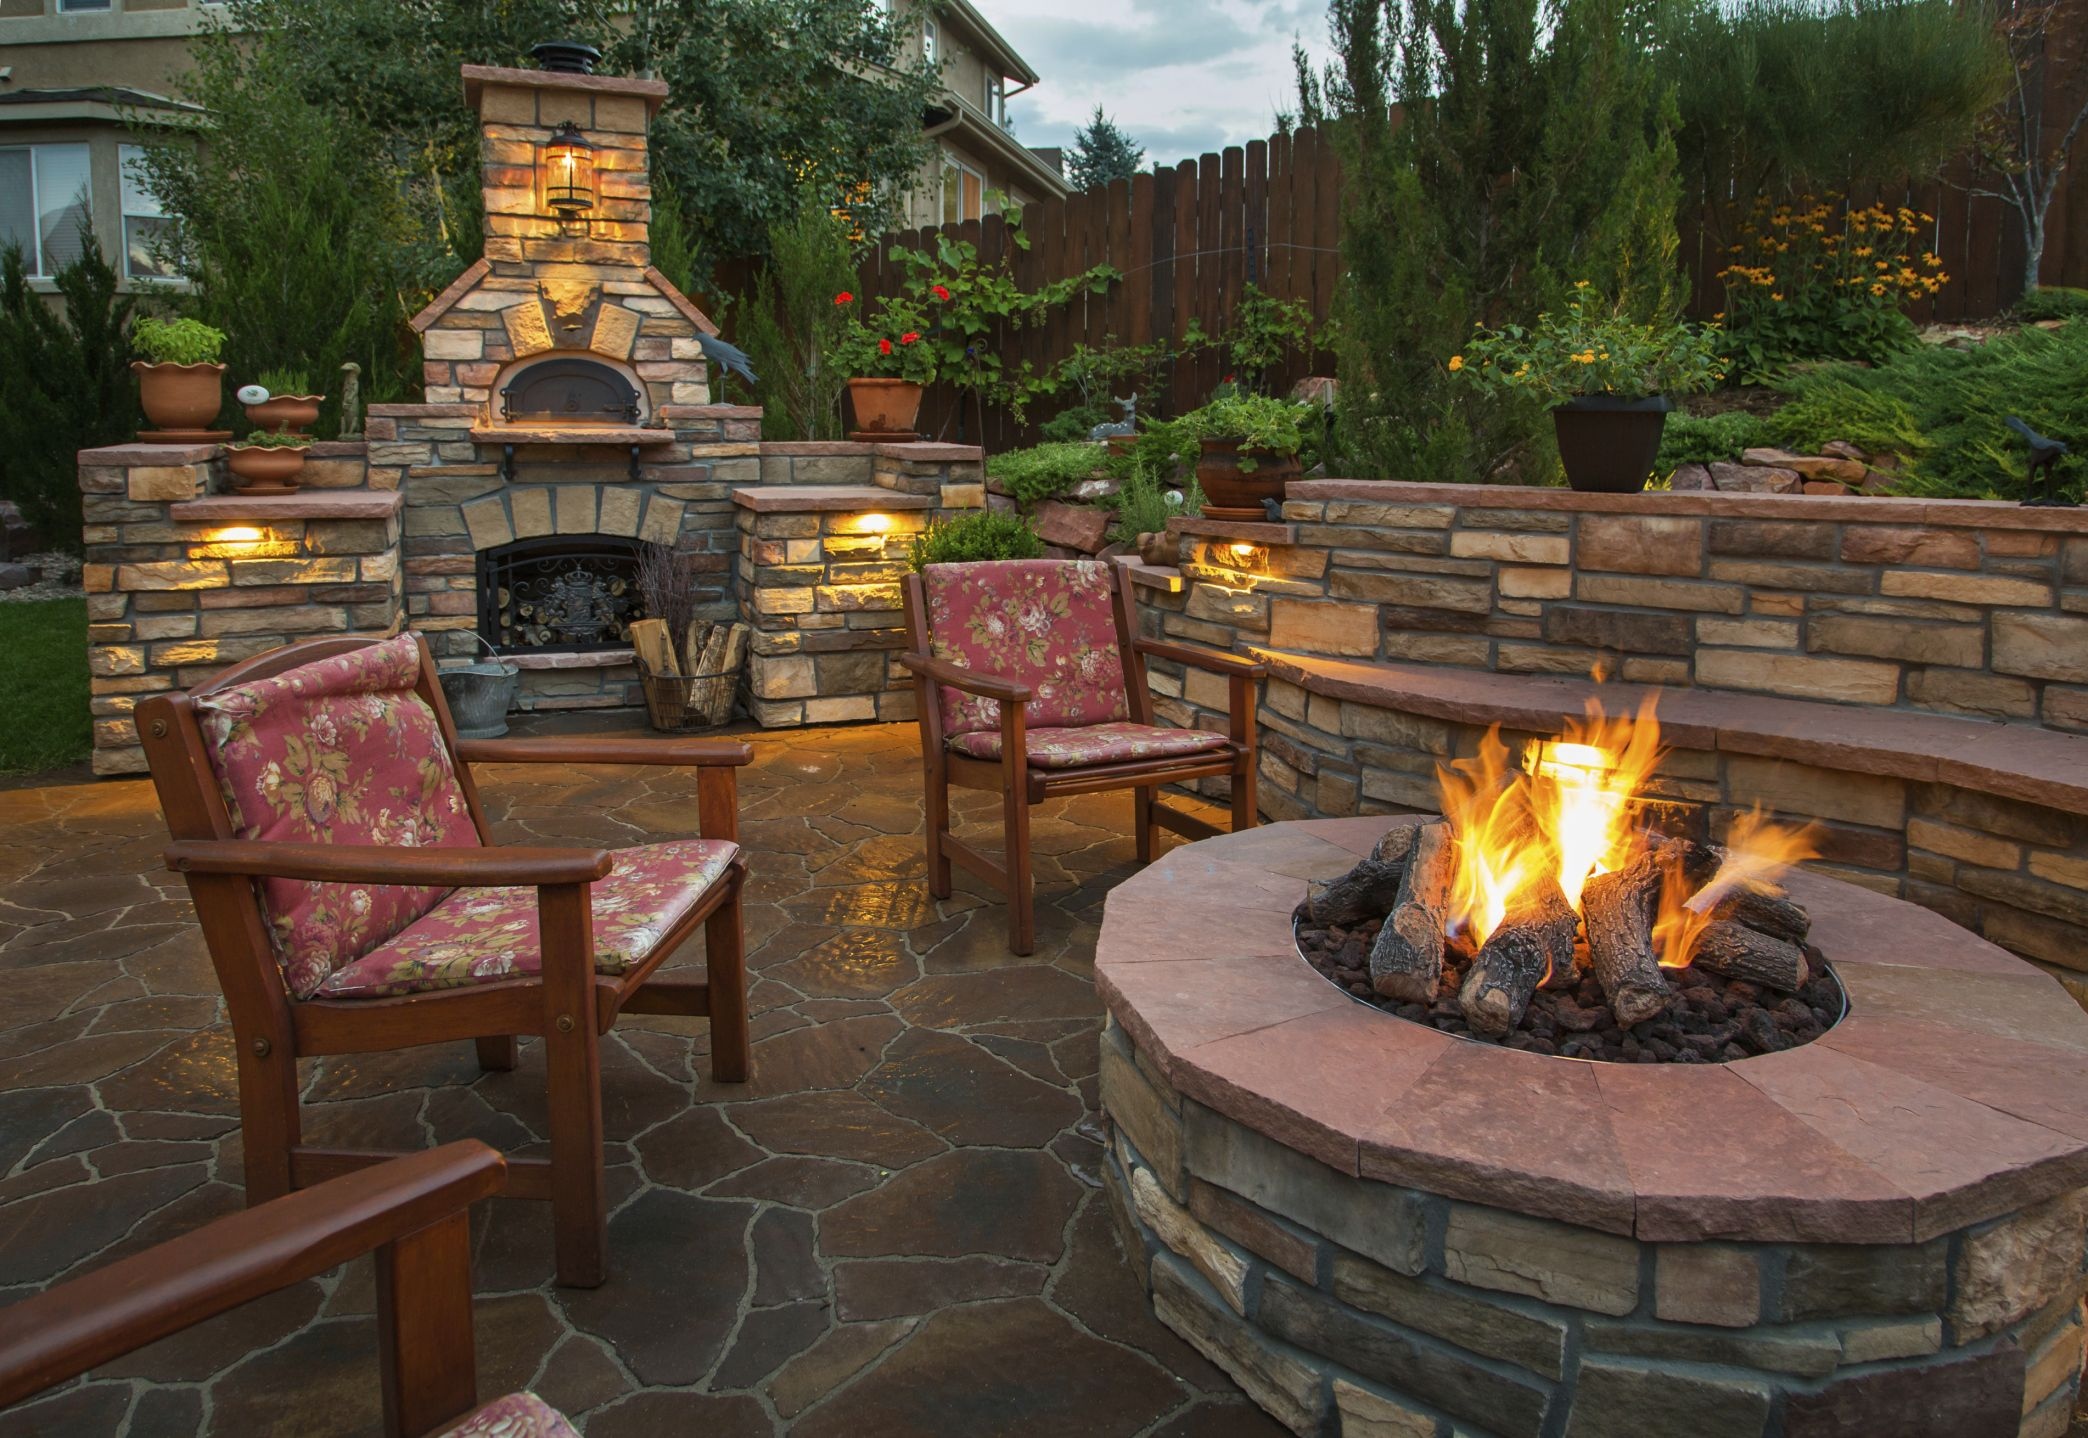 Backyard Fireplace With Pizza Oven Photos   Yahoo Image Search Results